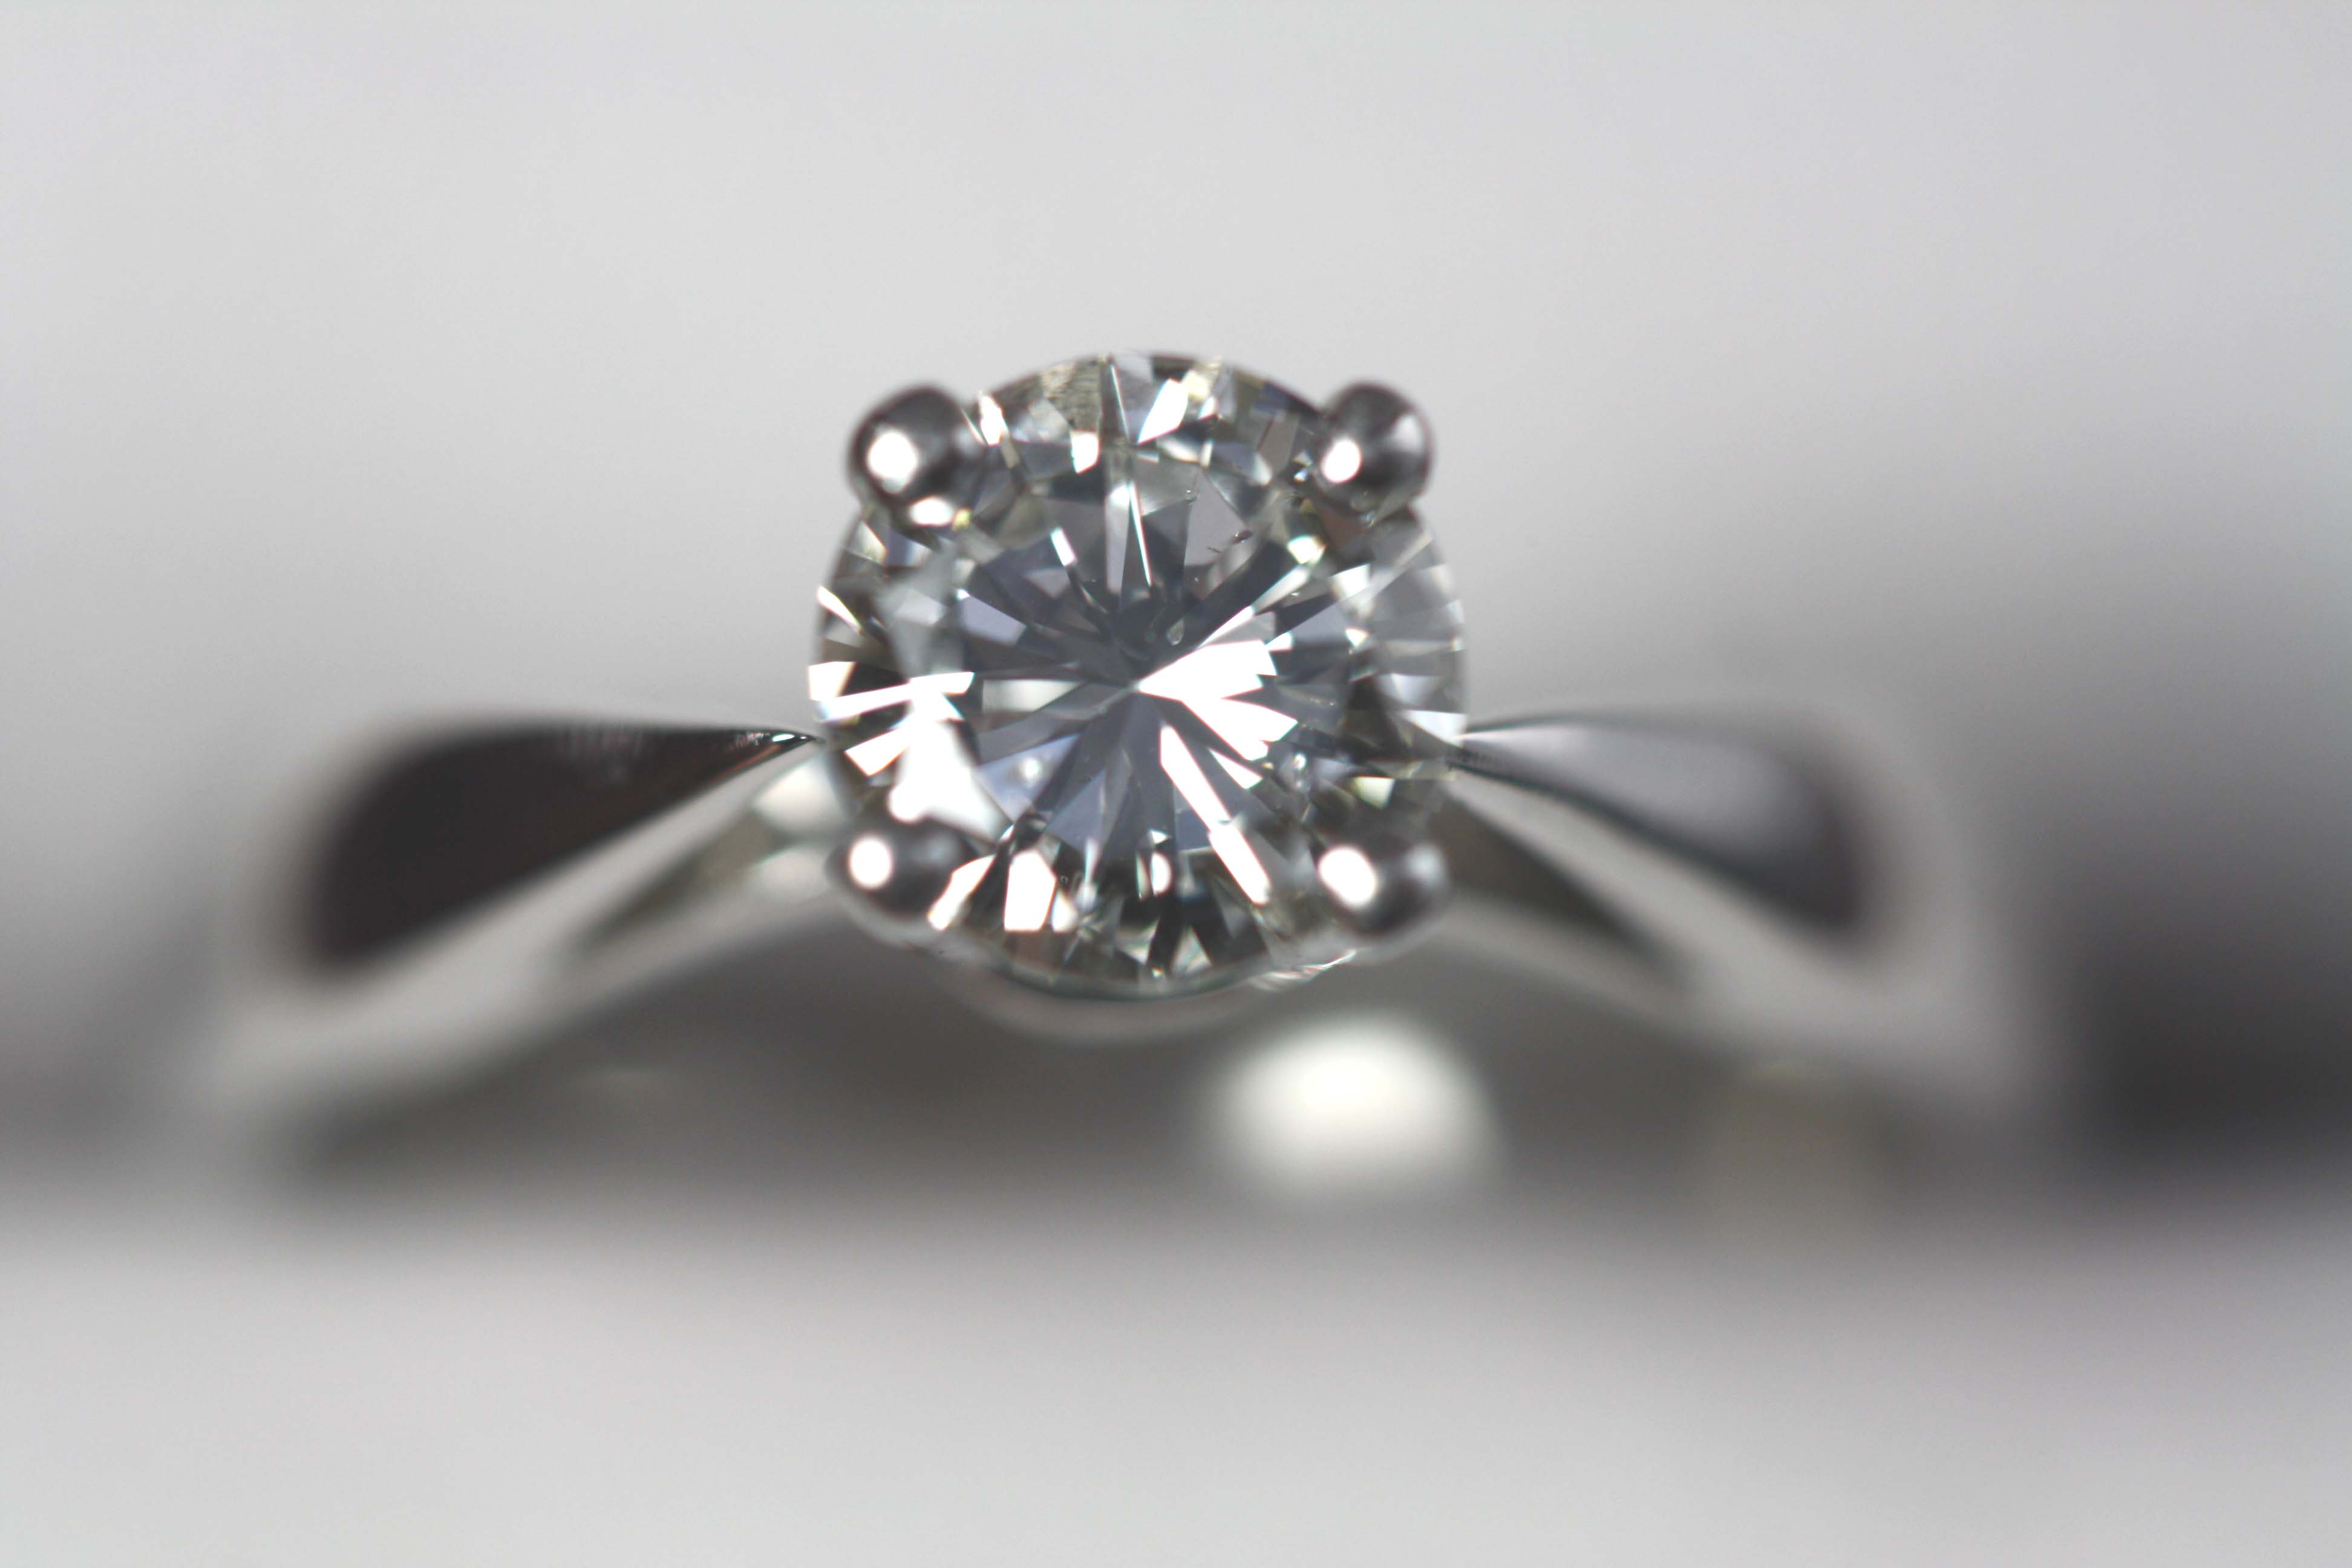 0.73 ct. Diamond Solitaire Ring